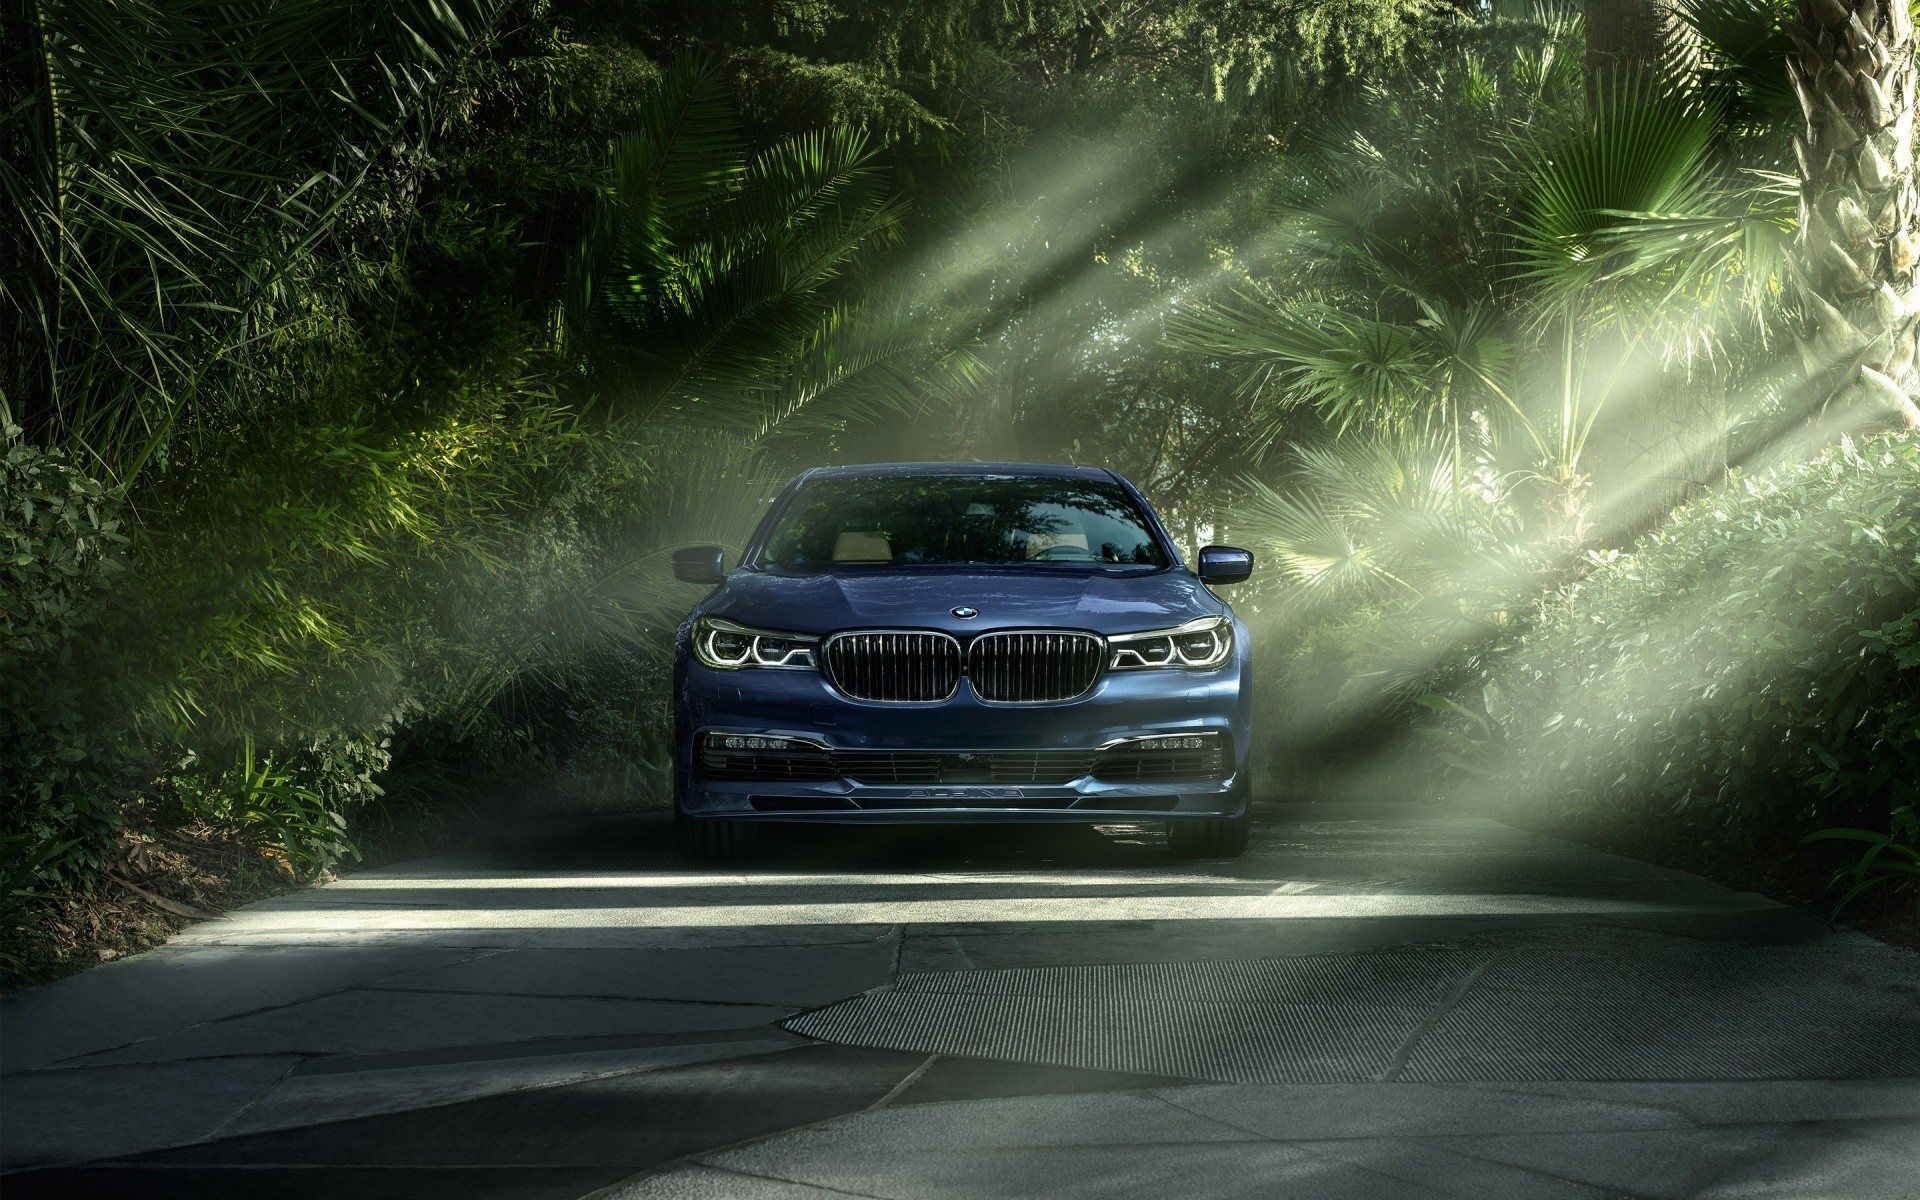 BMW Alpina phone wallpaper by mikecobb12 1920x1200